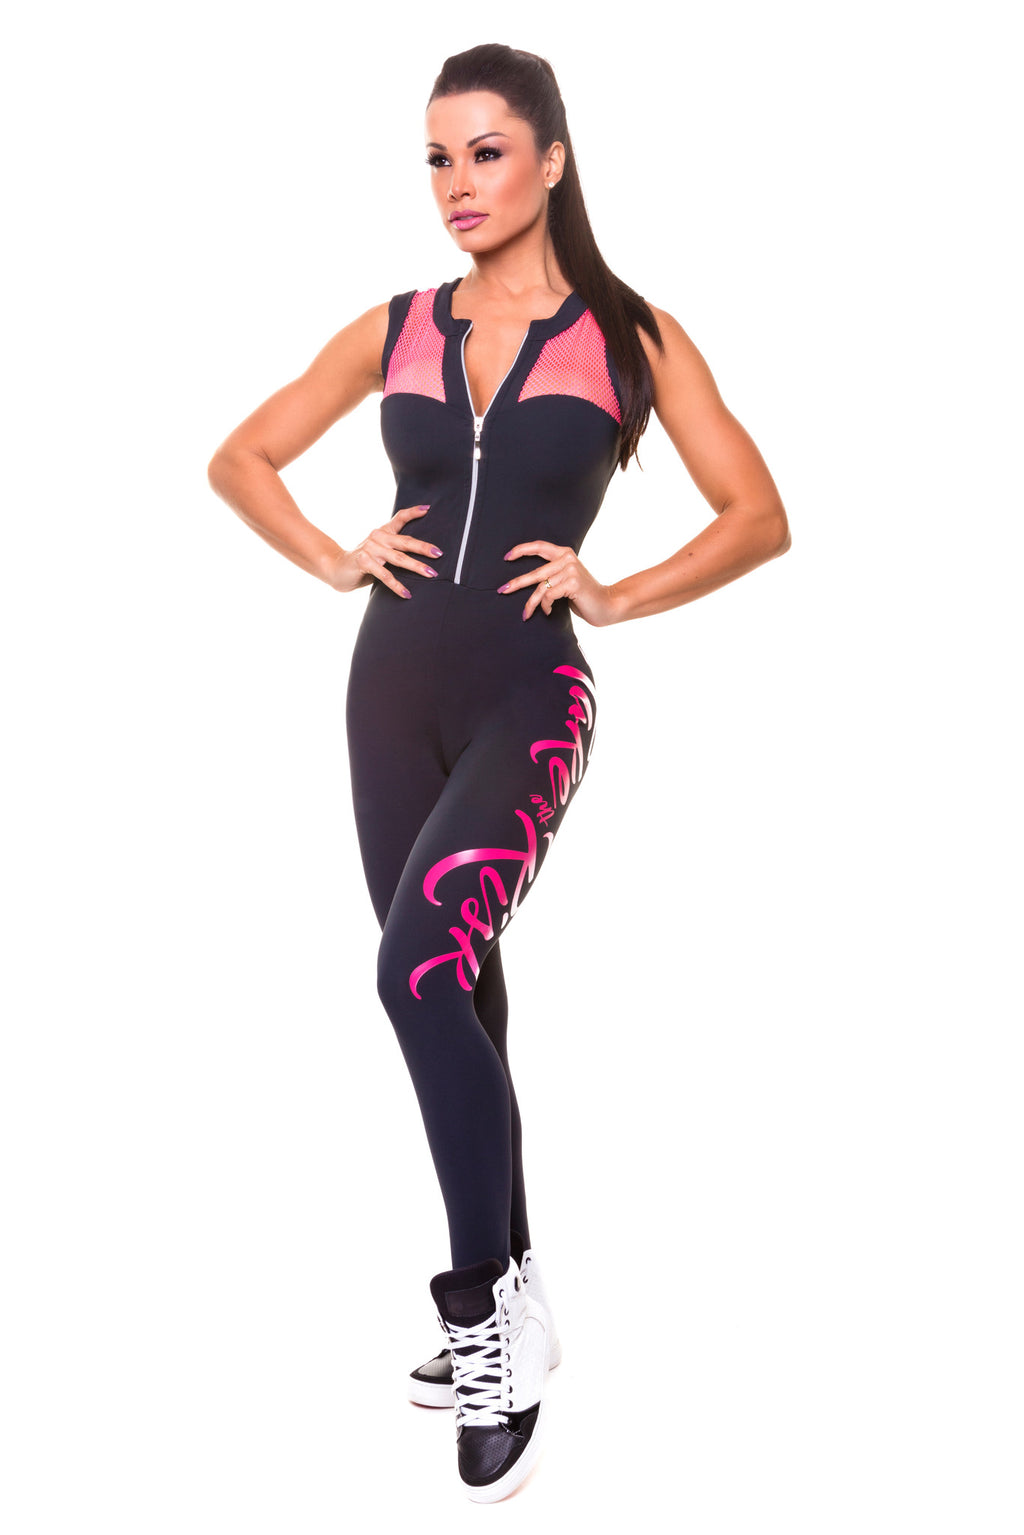 Braun Brazilian Workout Jumpsuit - Bad Girl Fitness